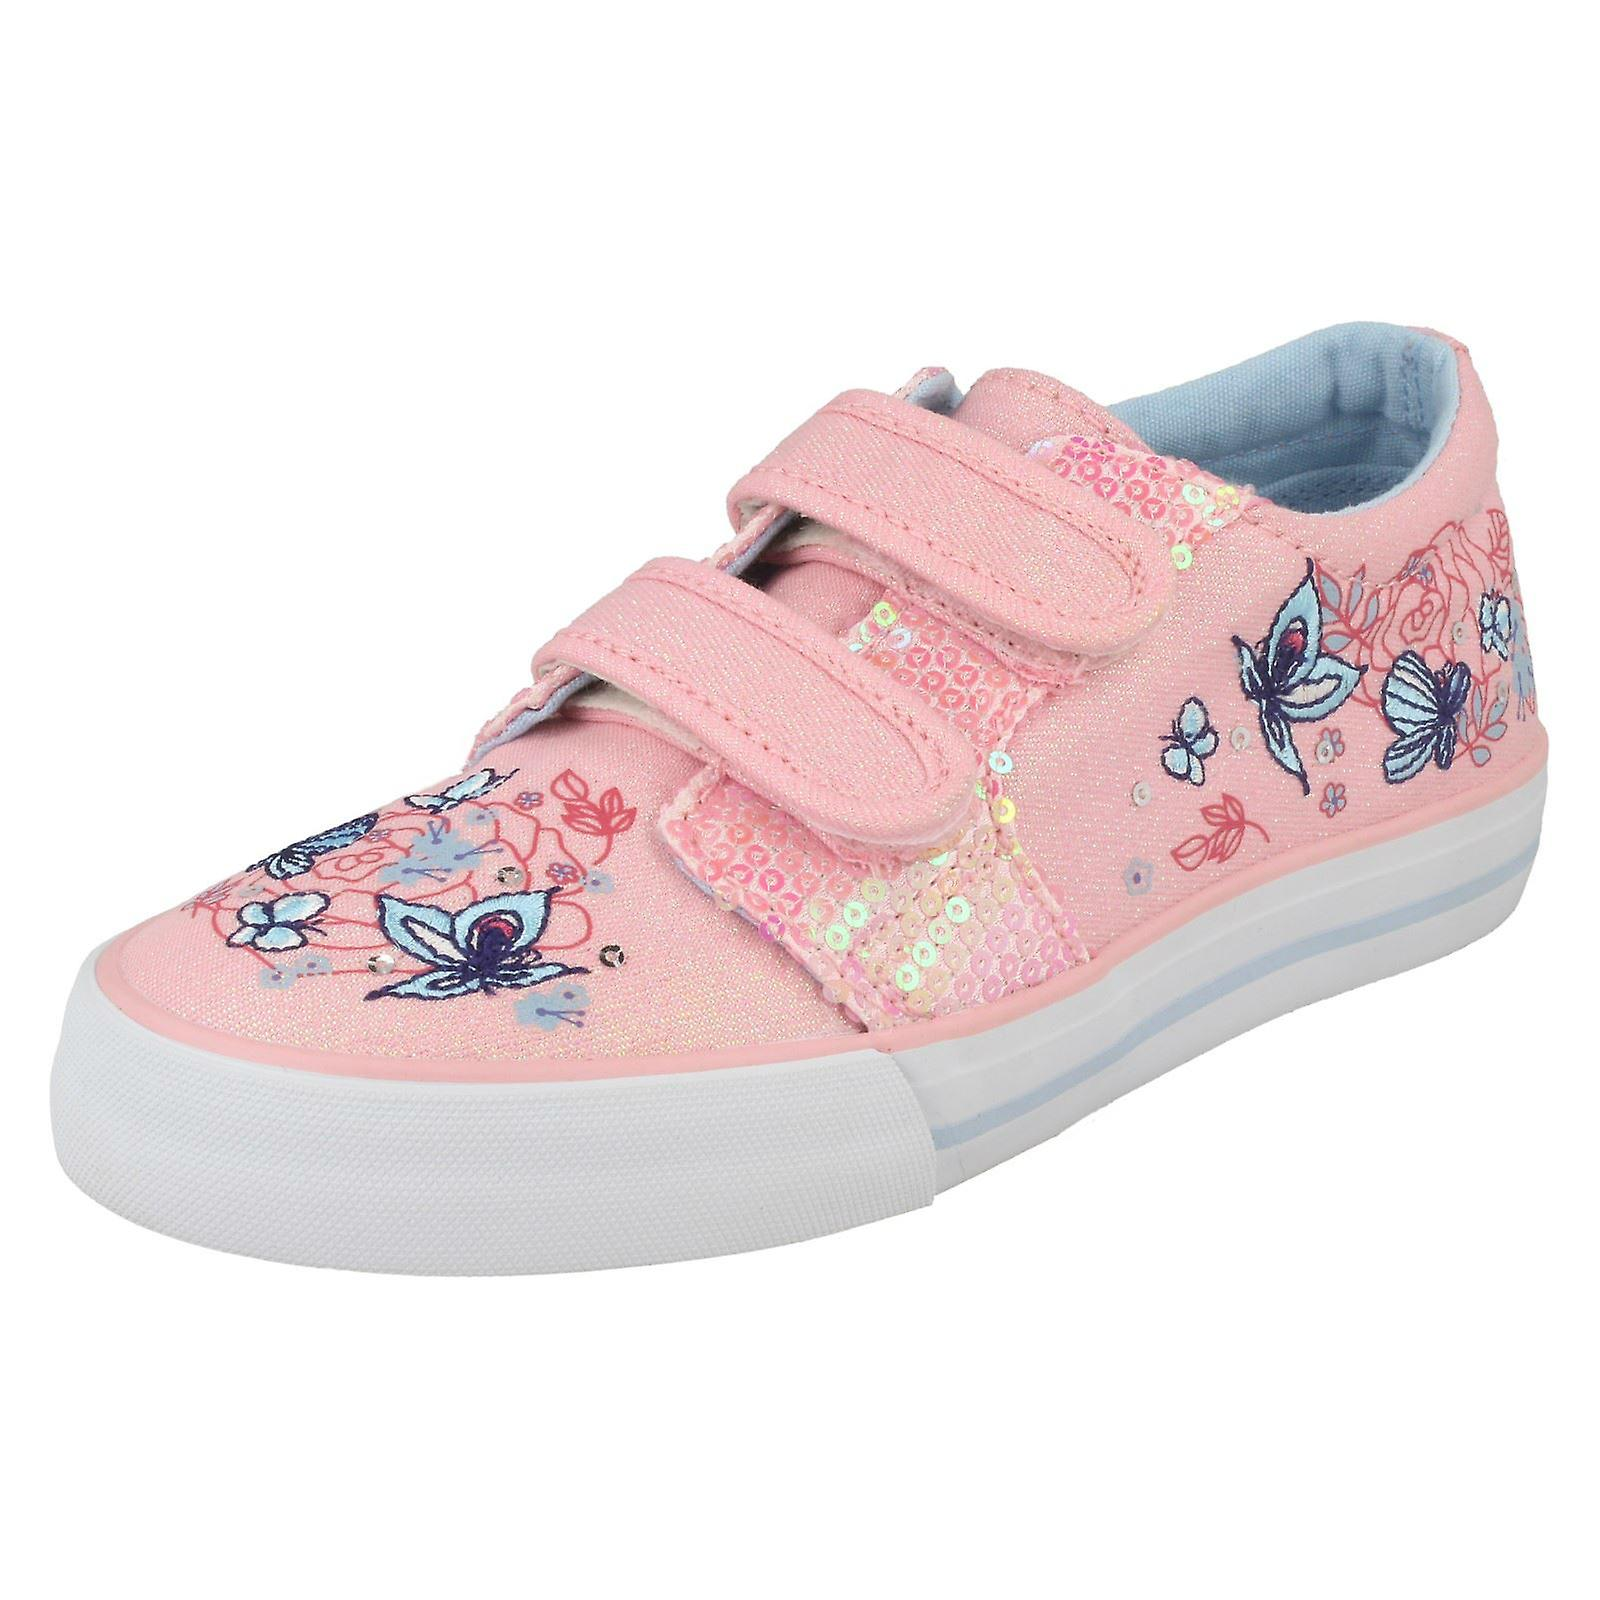 Girls Sorrento Startrite Glittery Canvas Shoes Sorrento Girls 50a5d0